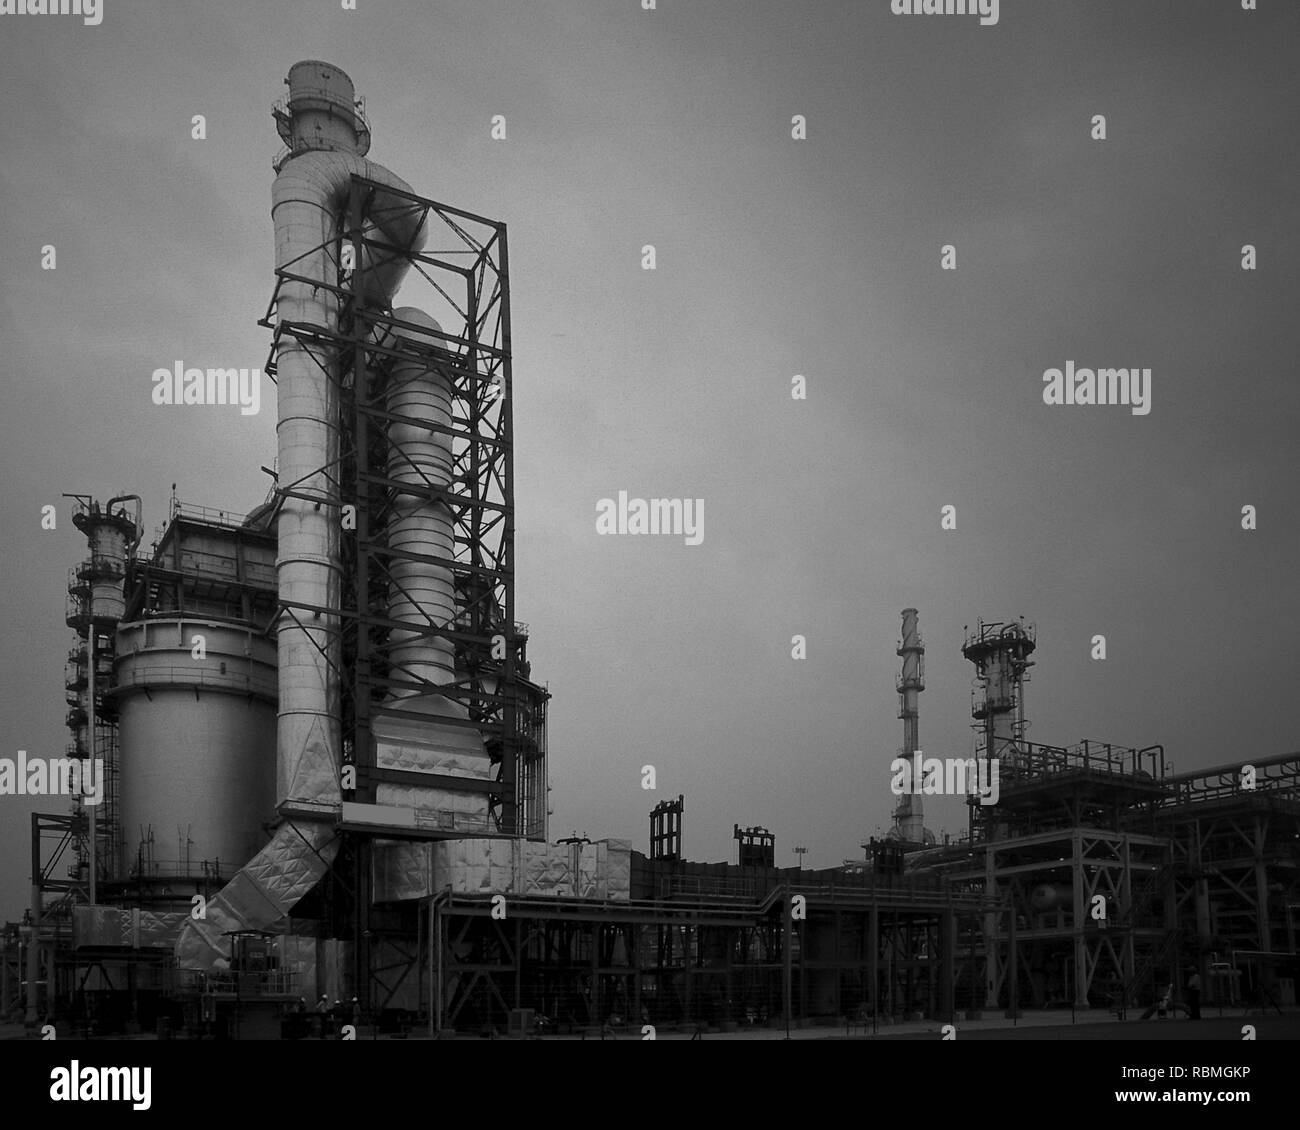 Indian Oil Corporation Limited refinery, Gujarat, India, Asia - Stock Image